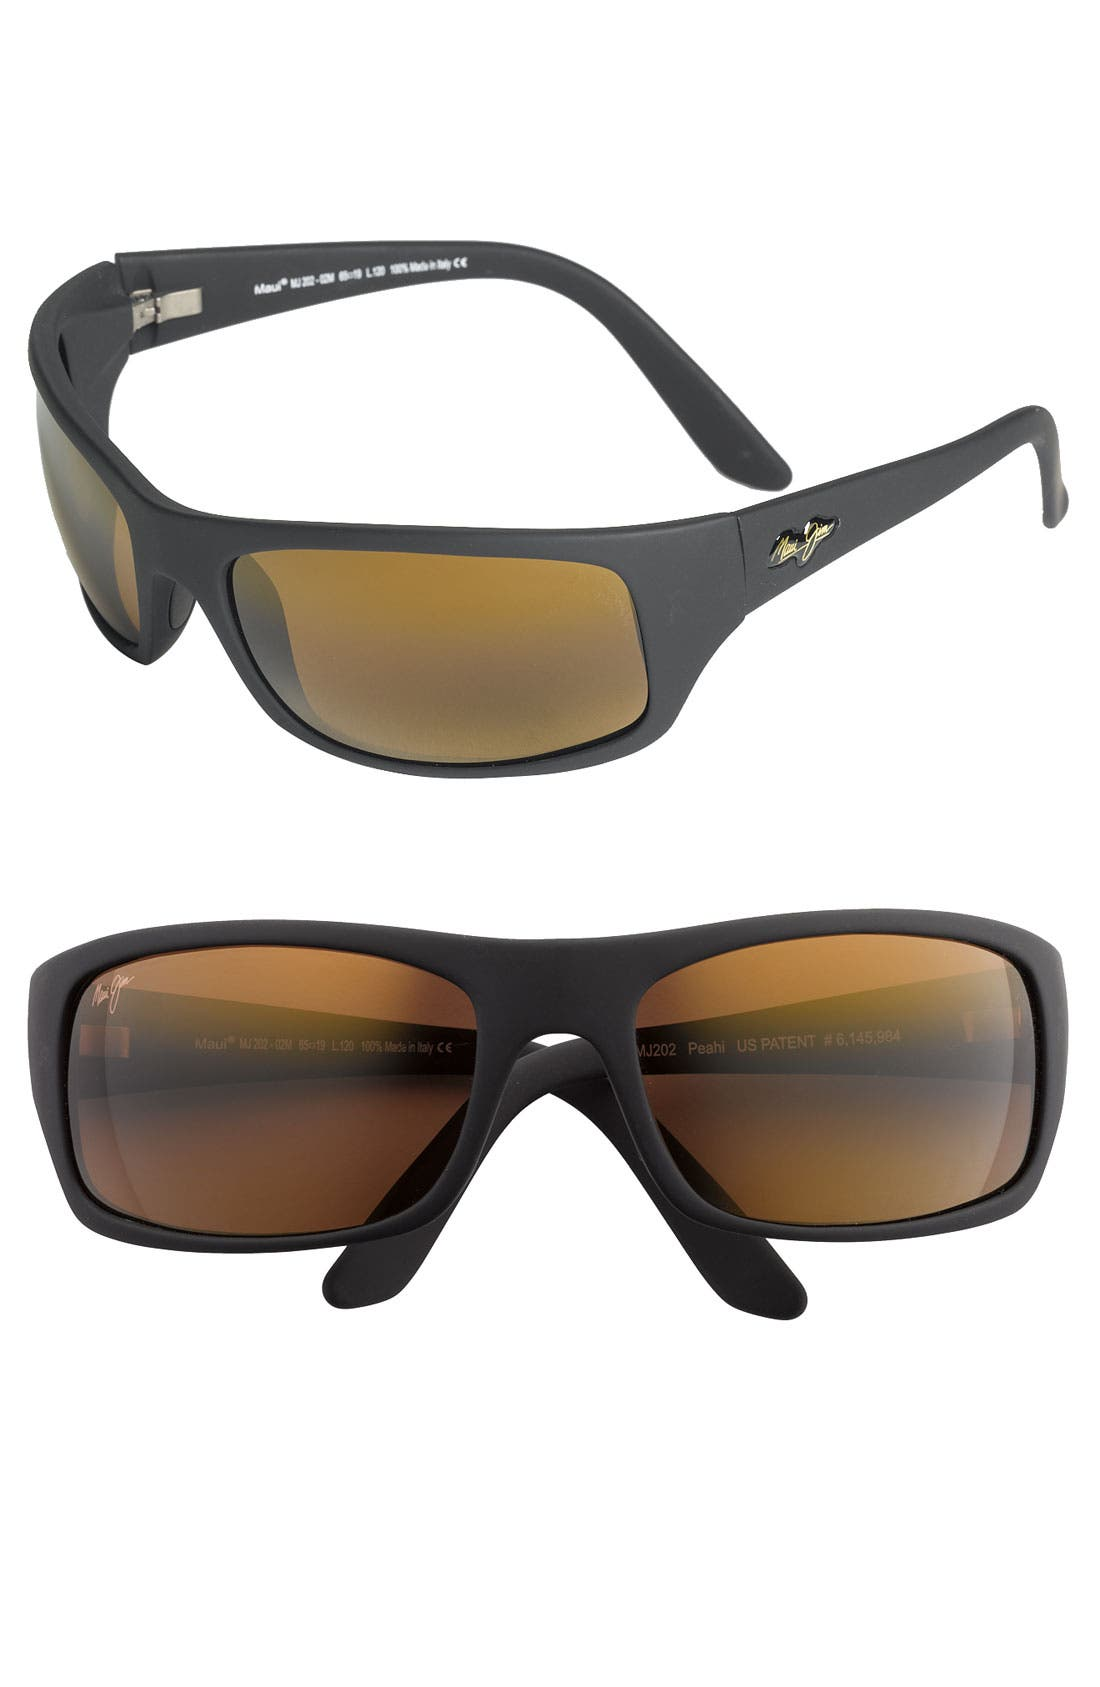 MAUI JIM Peahi - PolarizedPlus<sup>®</sup>2 65mm Sunglasses